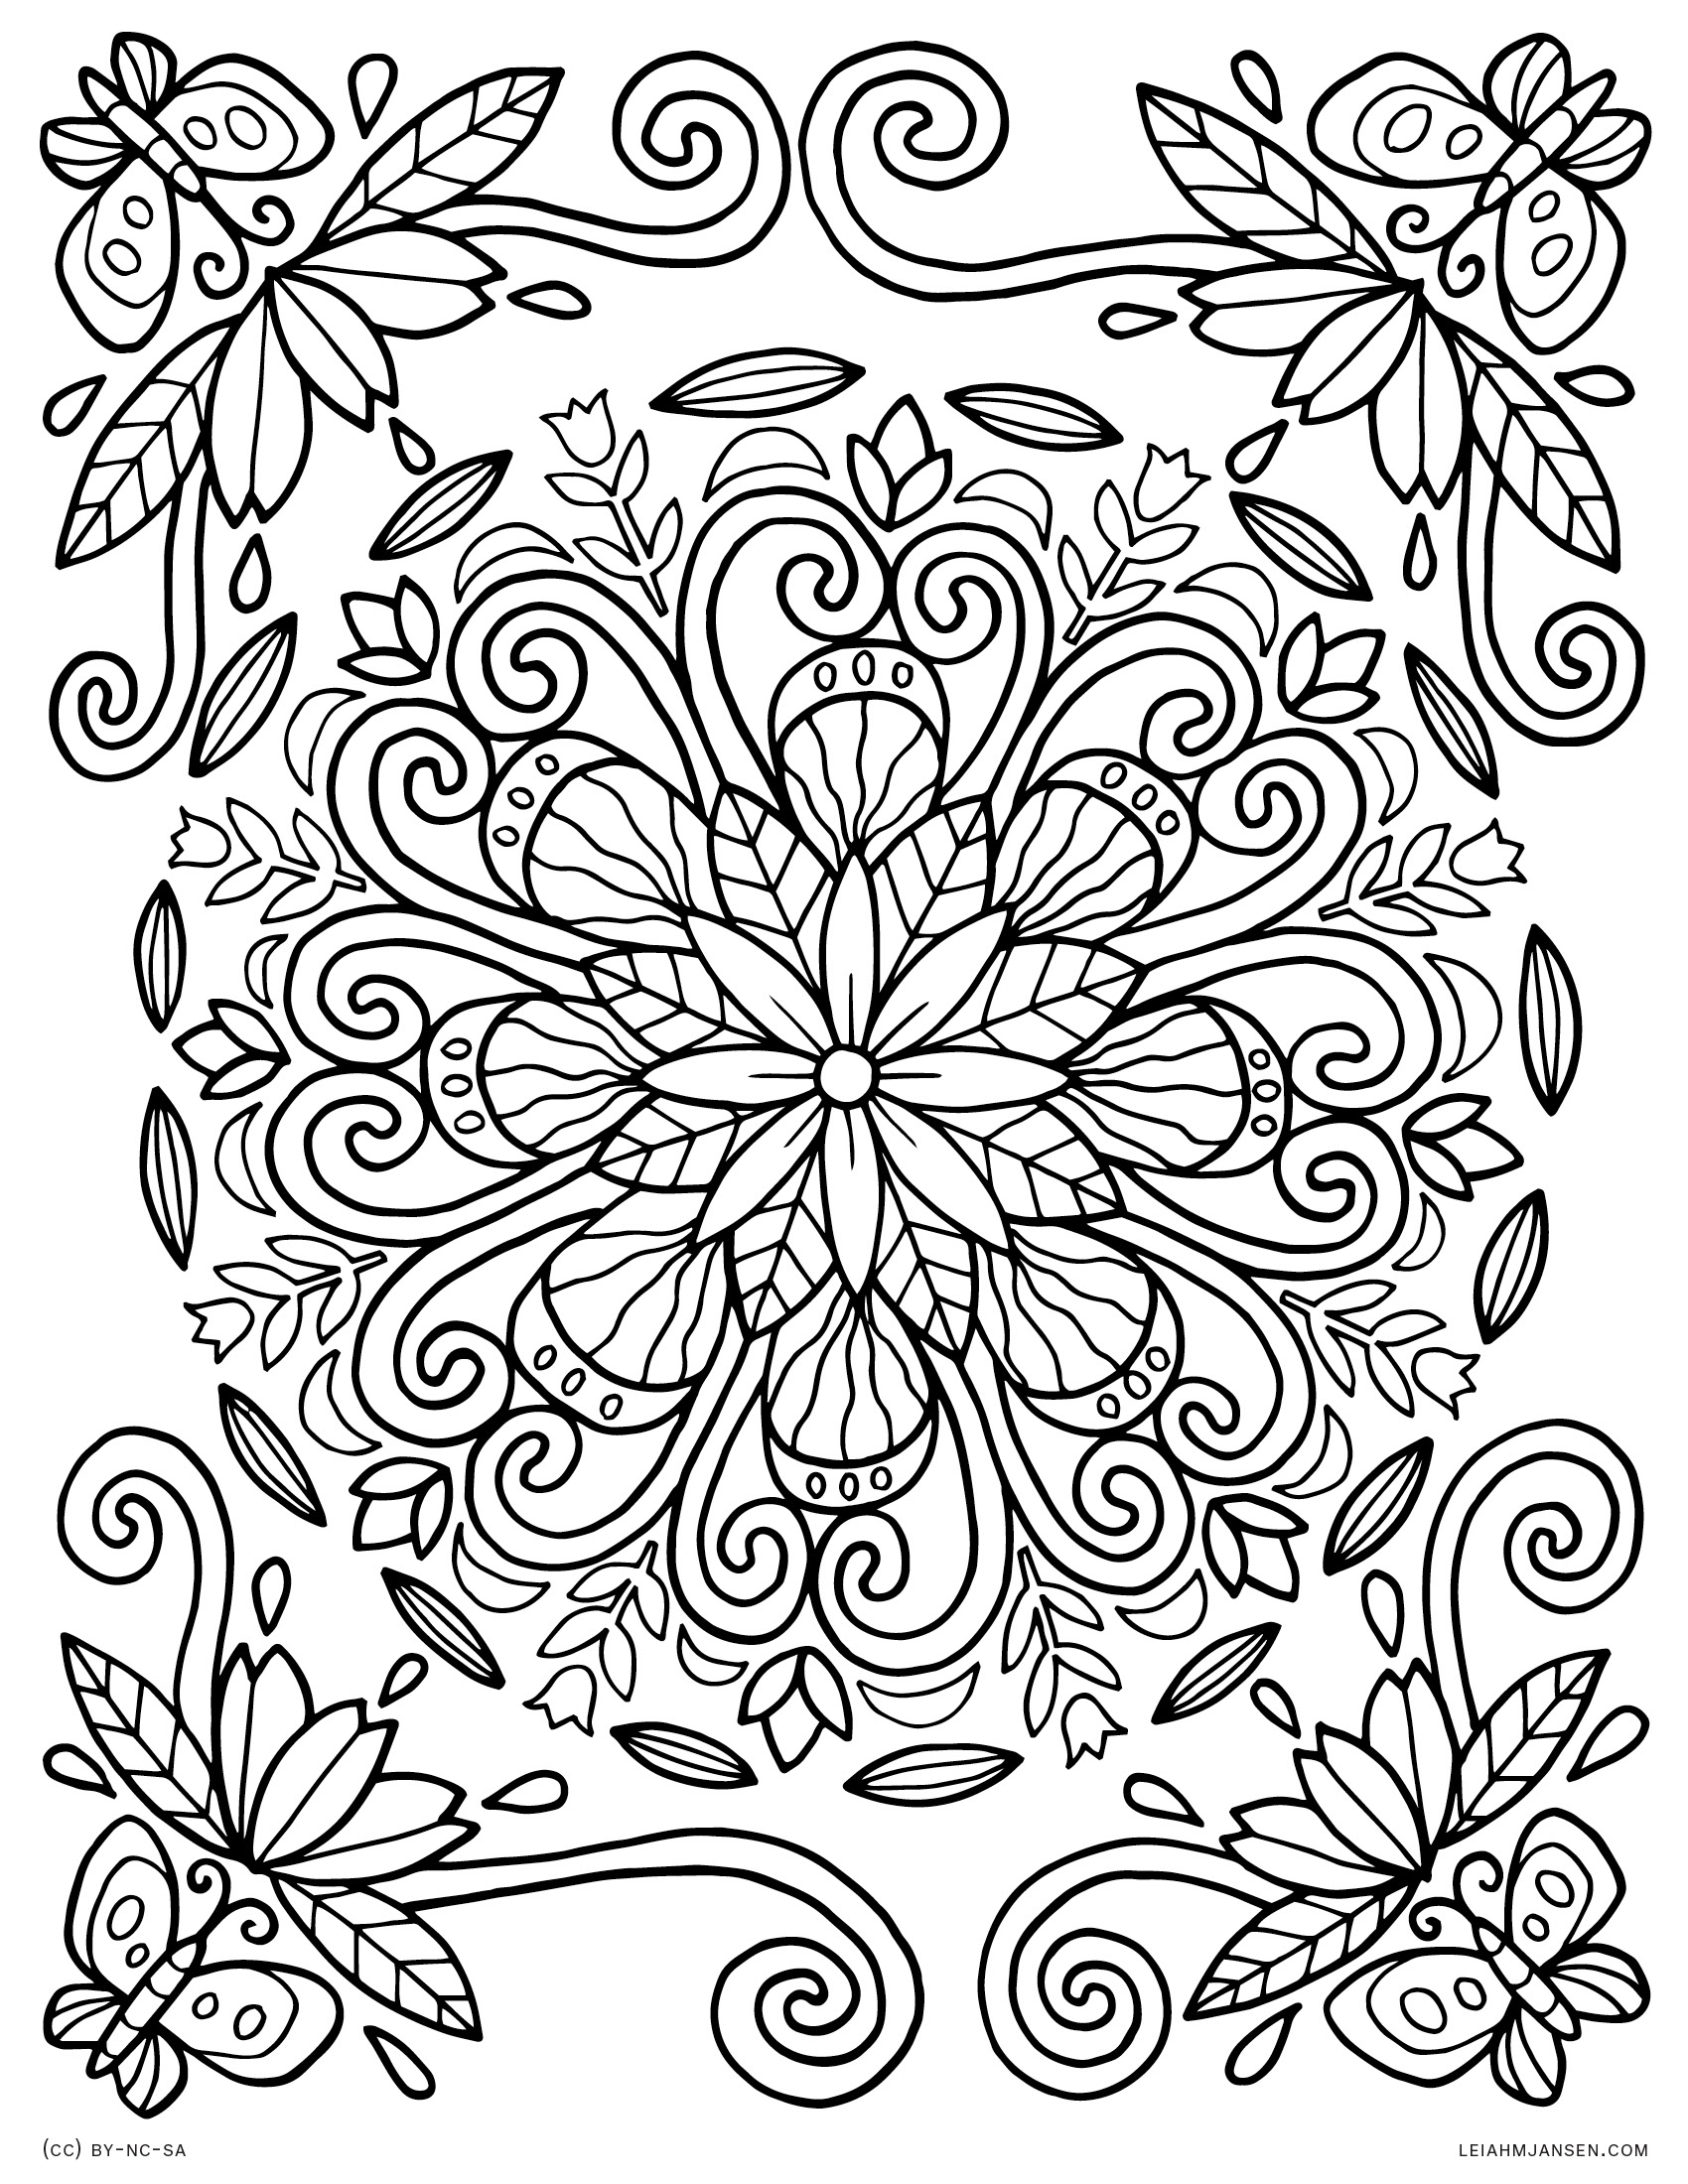 Tribal Design Coloring Pages At Getcolorings